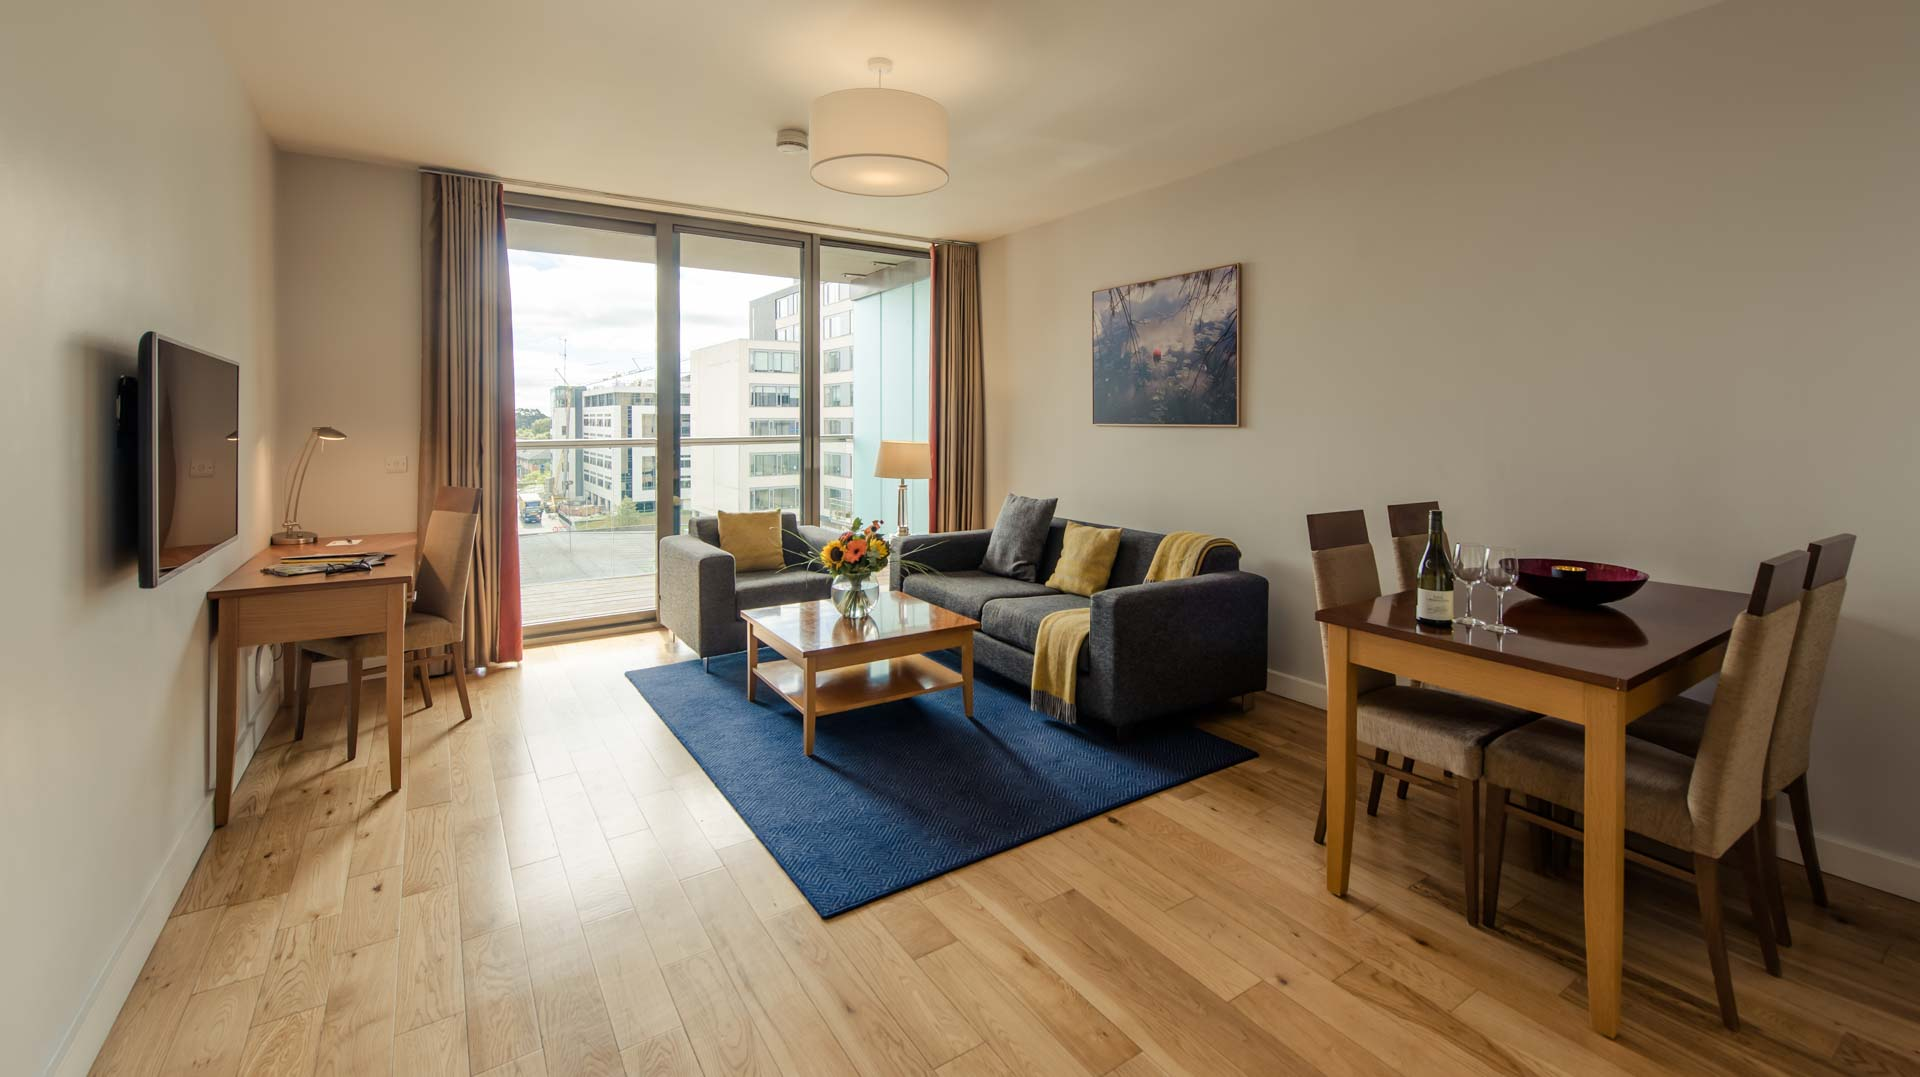 Living room at Premier Suites Dublin Sandyford, Sandyford, Dublin - Citybase Apartments